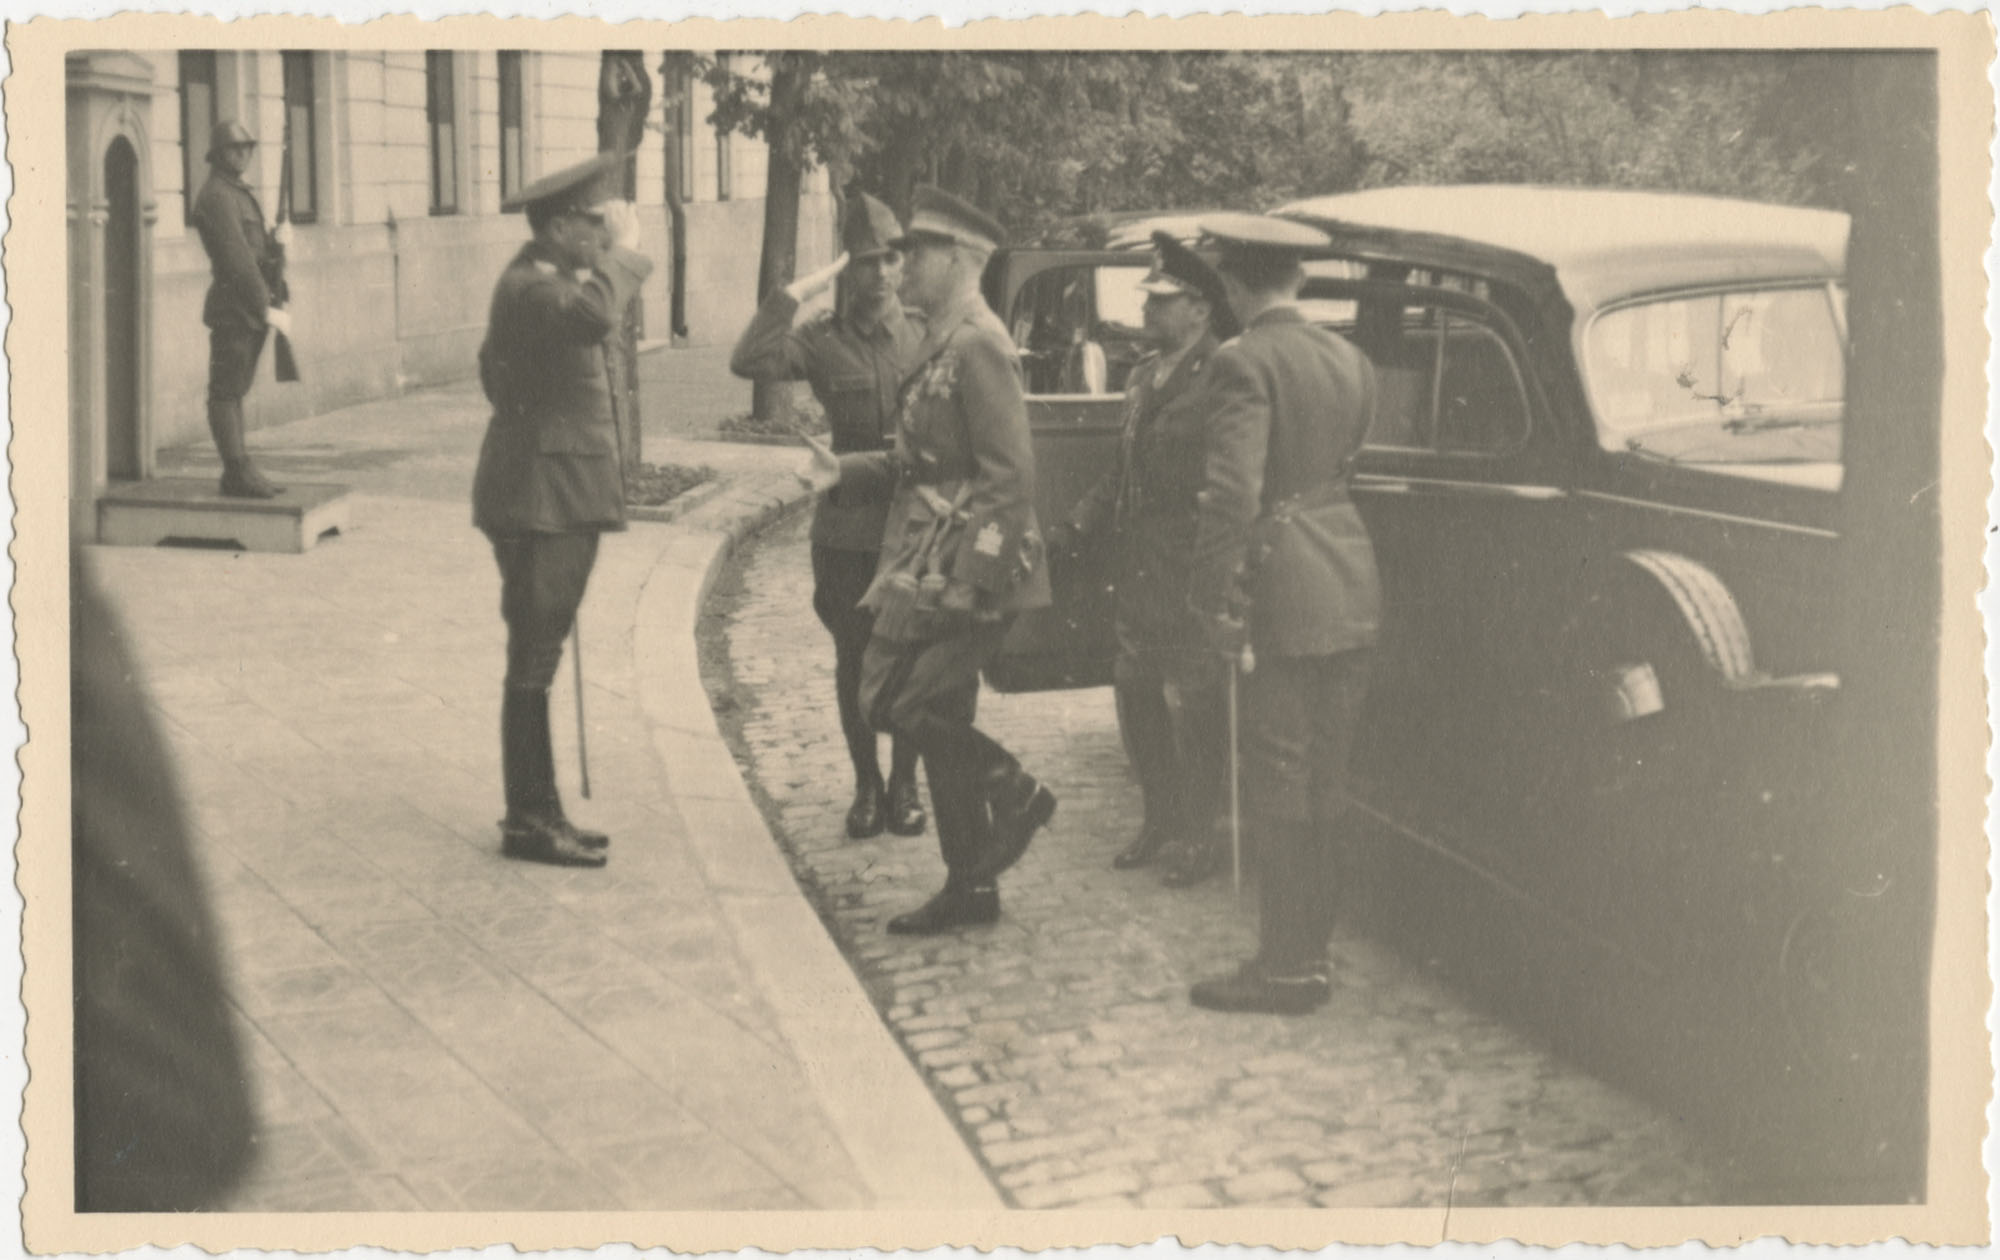 Military officials greeting each other, Photograph 2